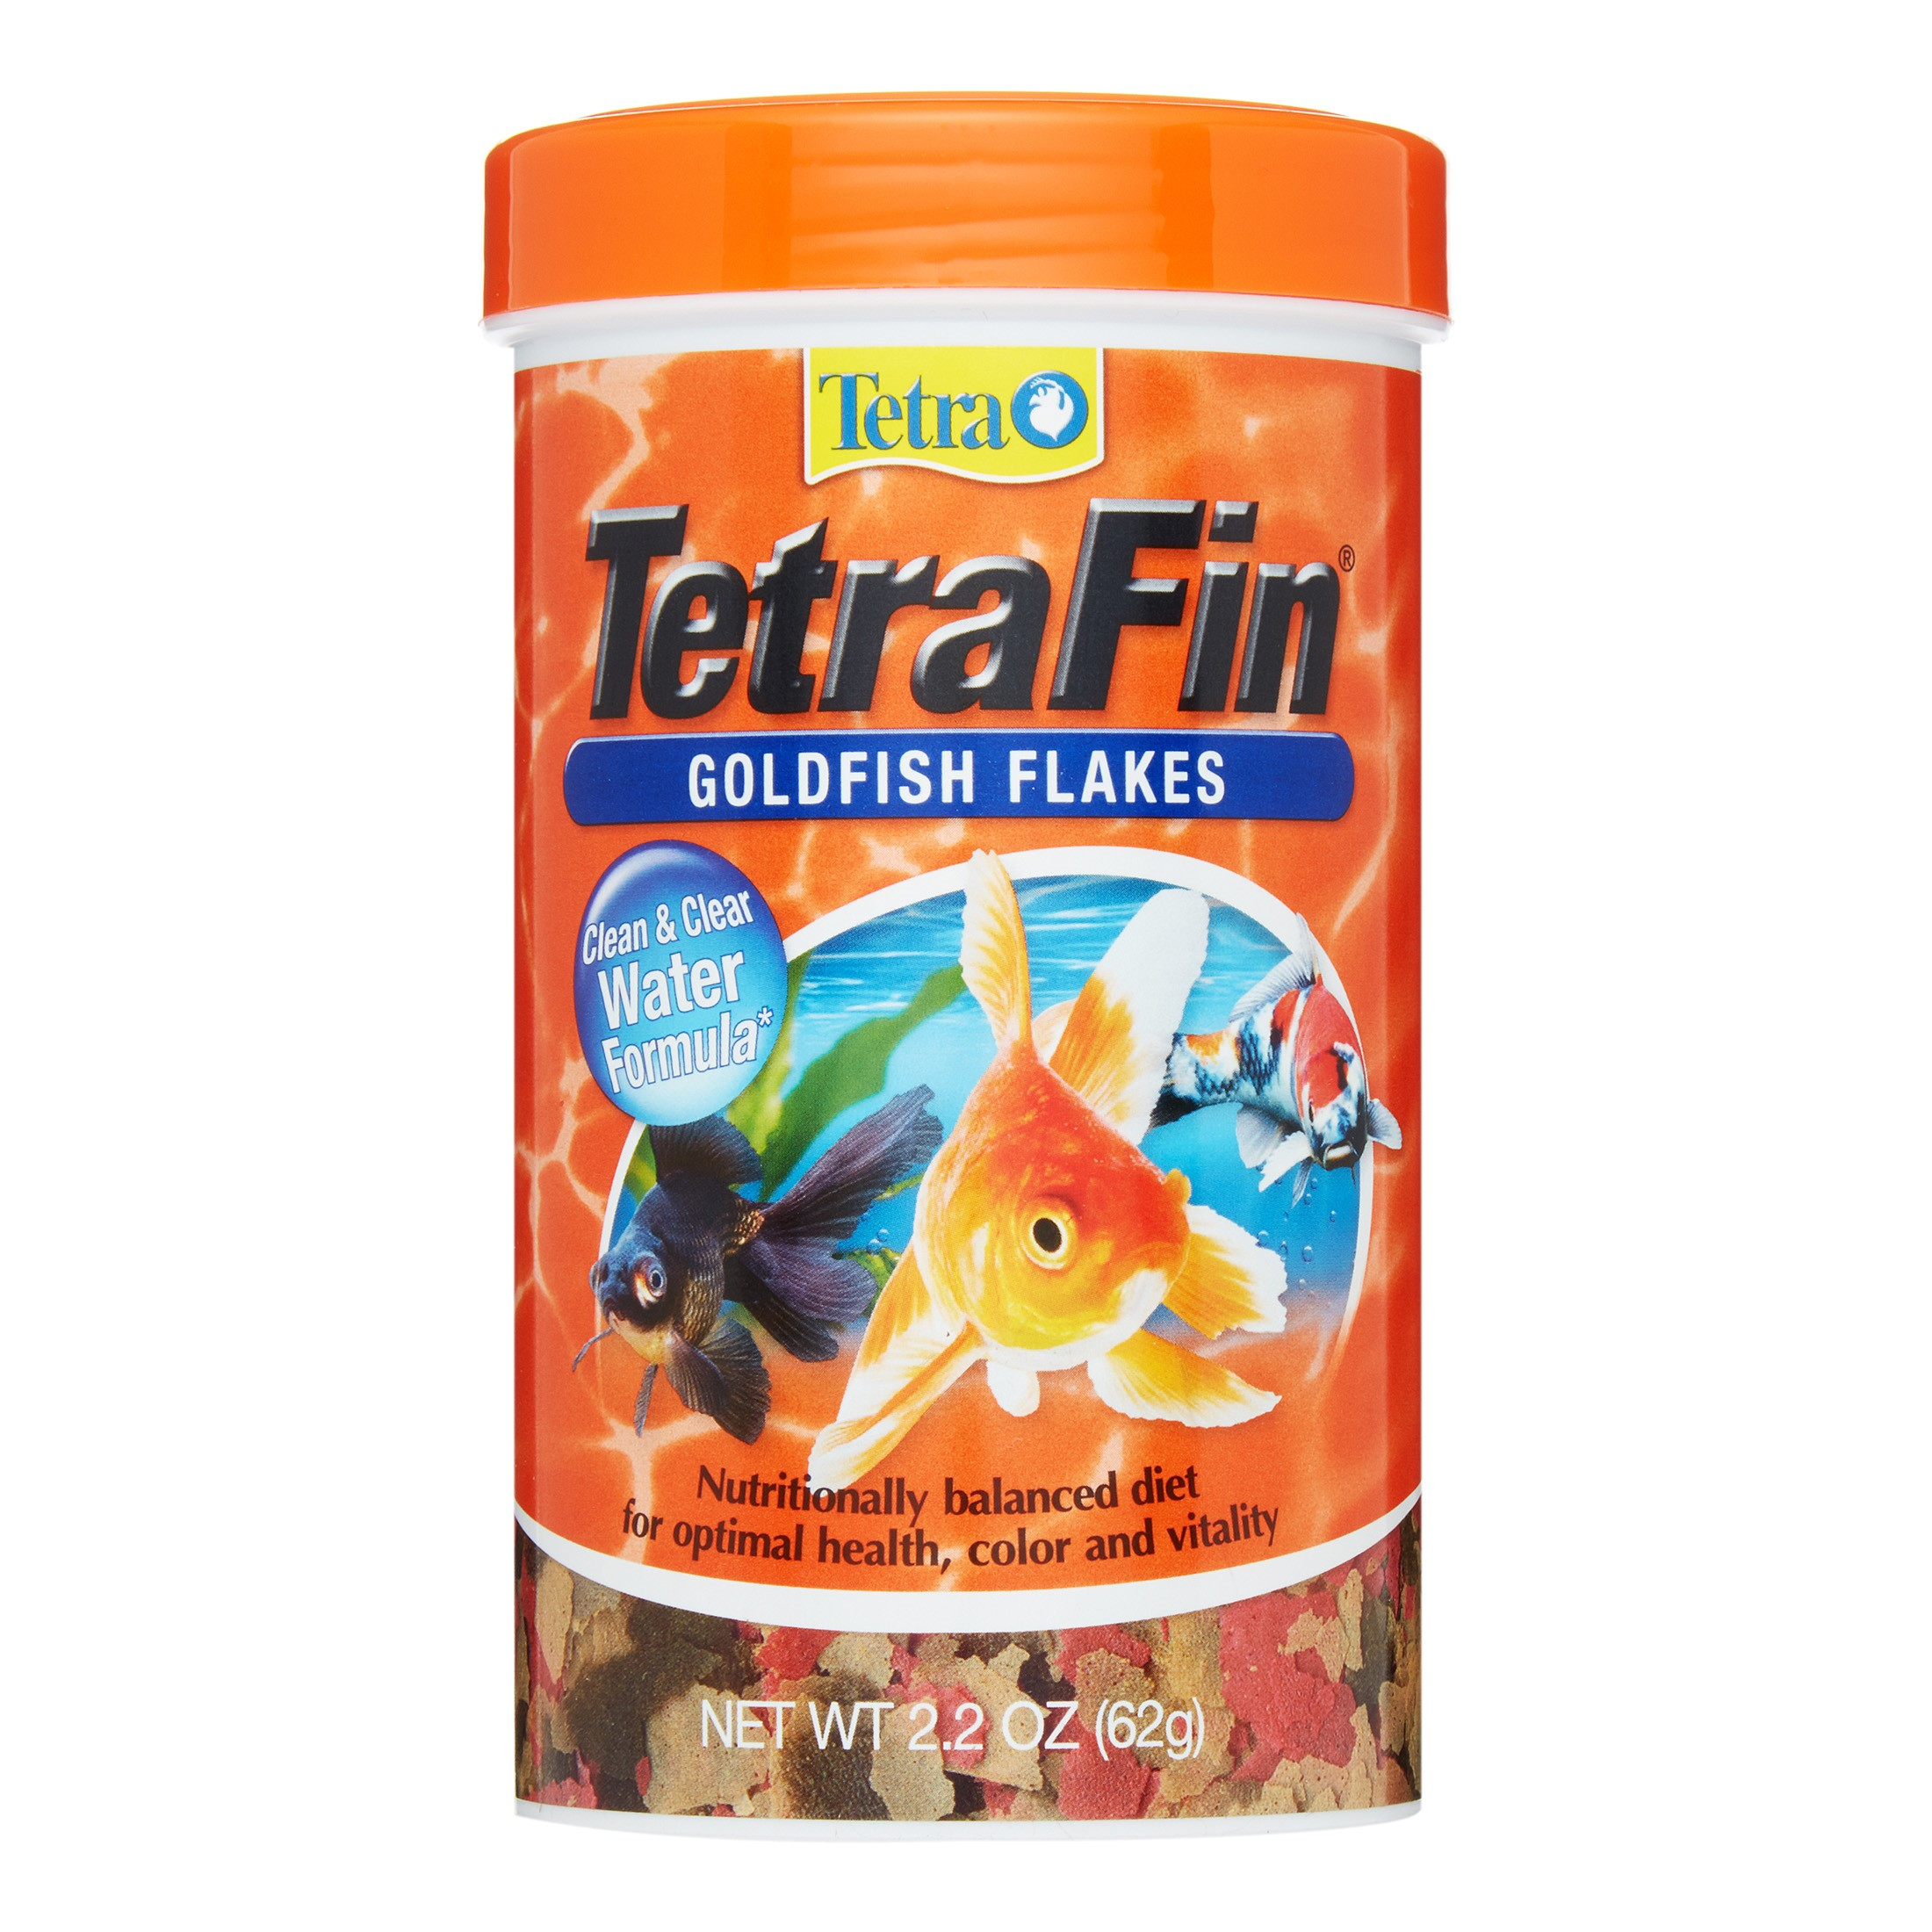 Tetra TetraFin Goldfish Flakes with ProCare, Goldfish Food- 2.2-oz